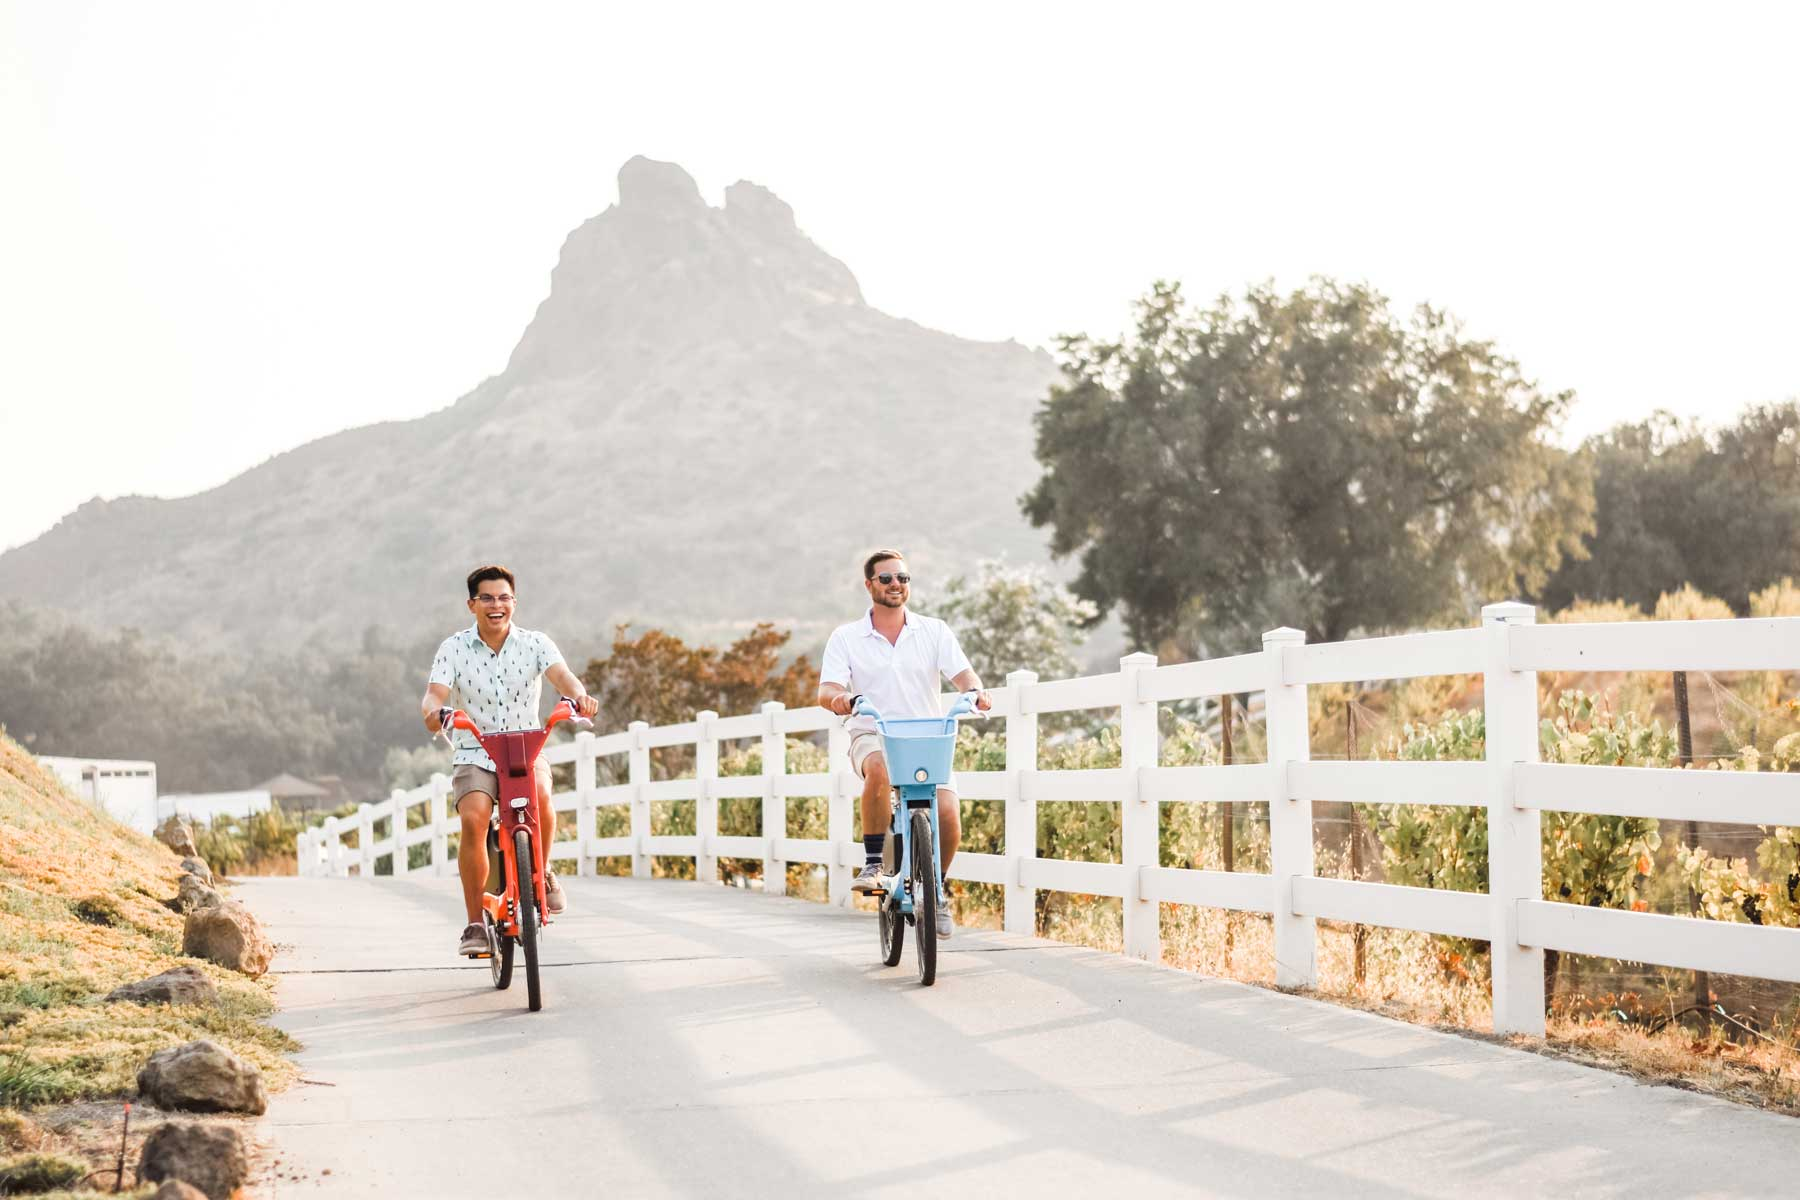 Two Men enjoying a leisure bike ride in Malibu California on a sunny day